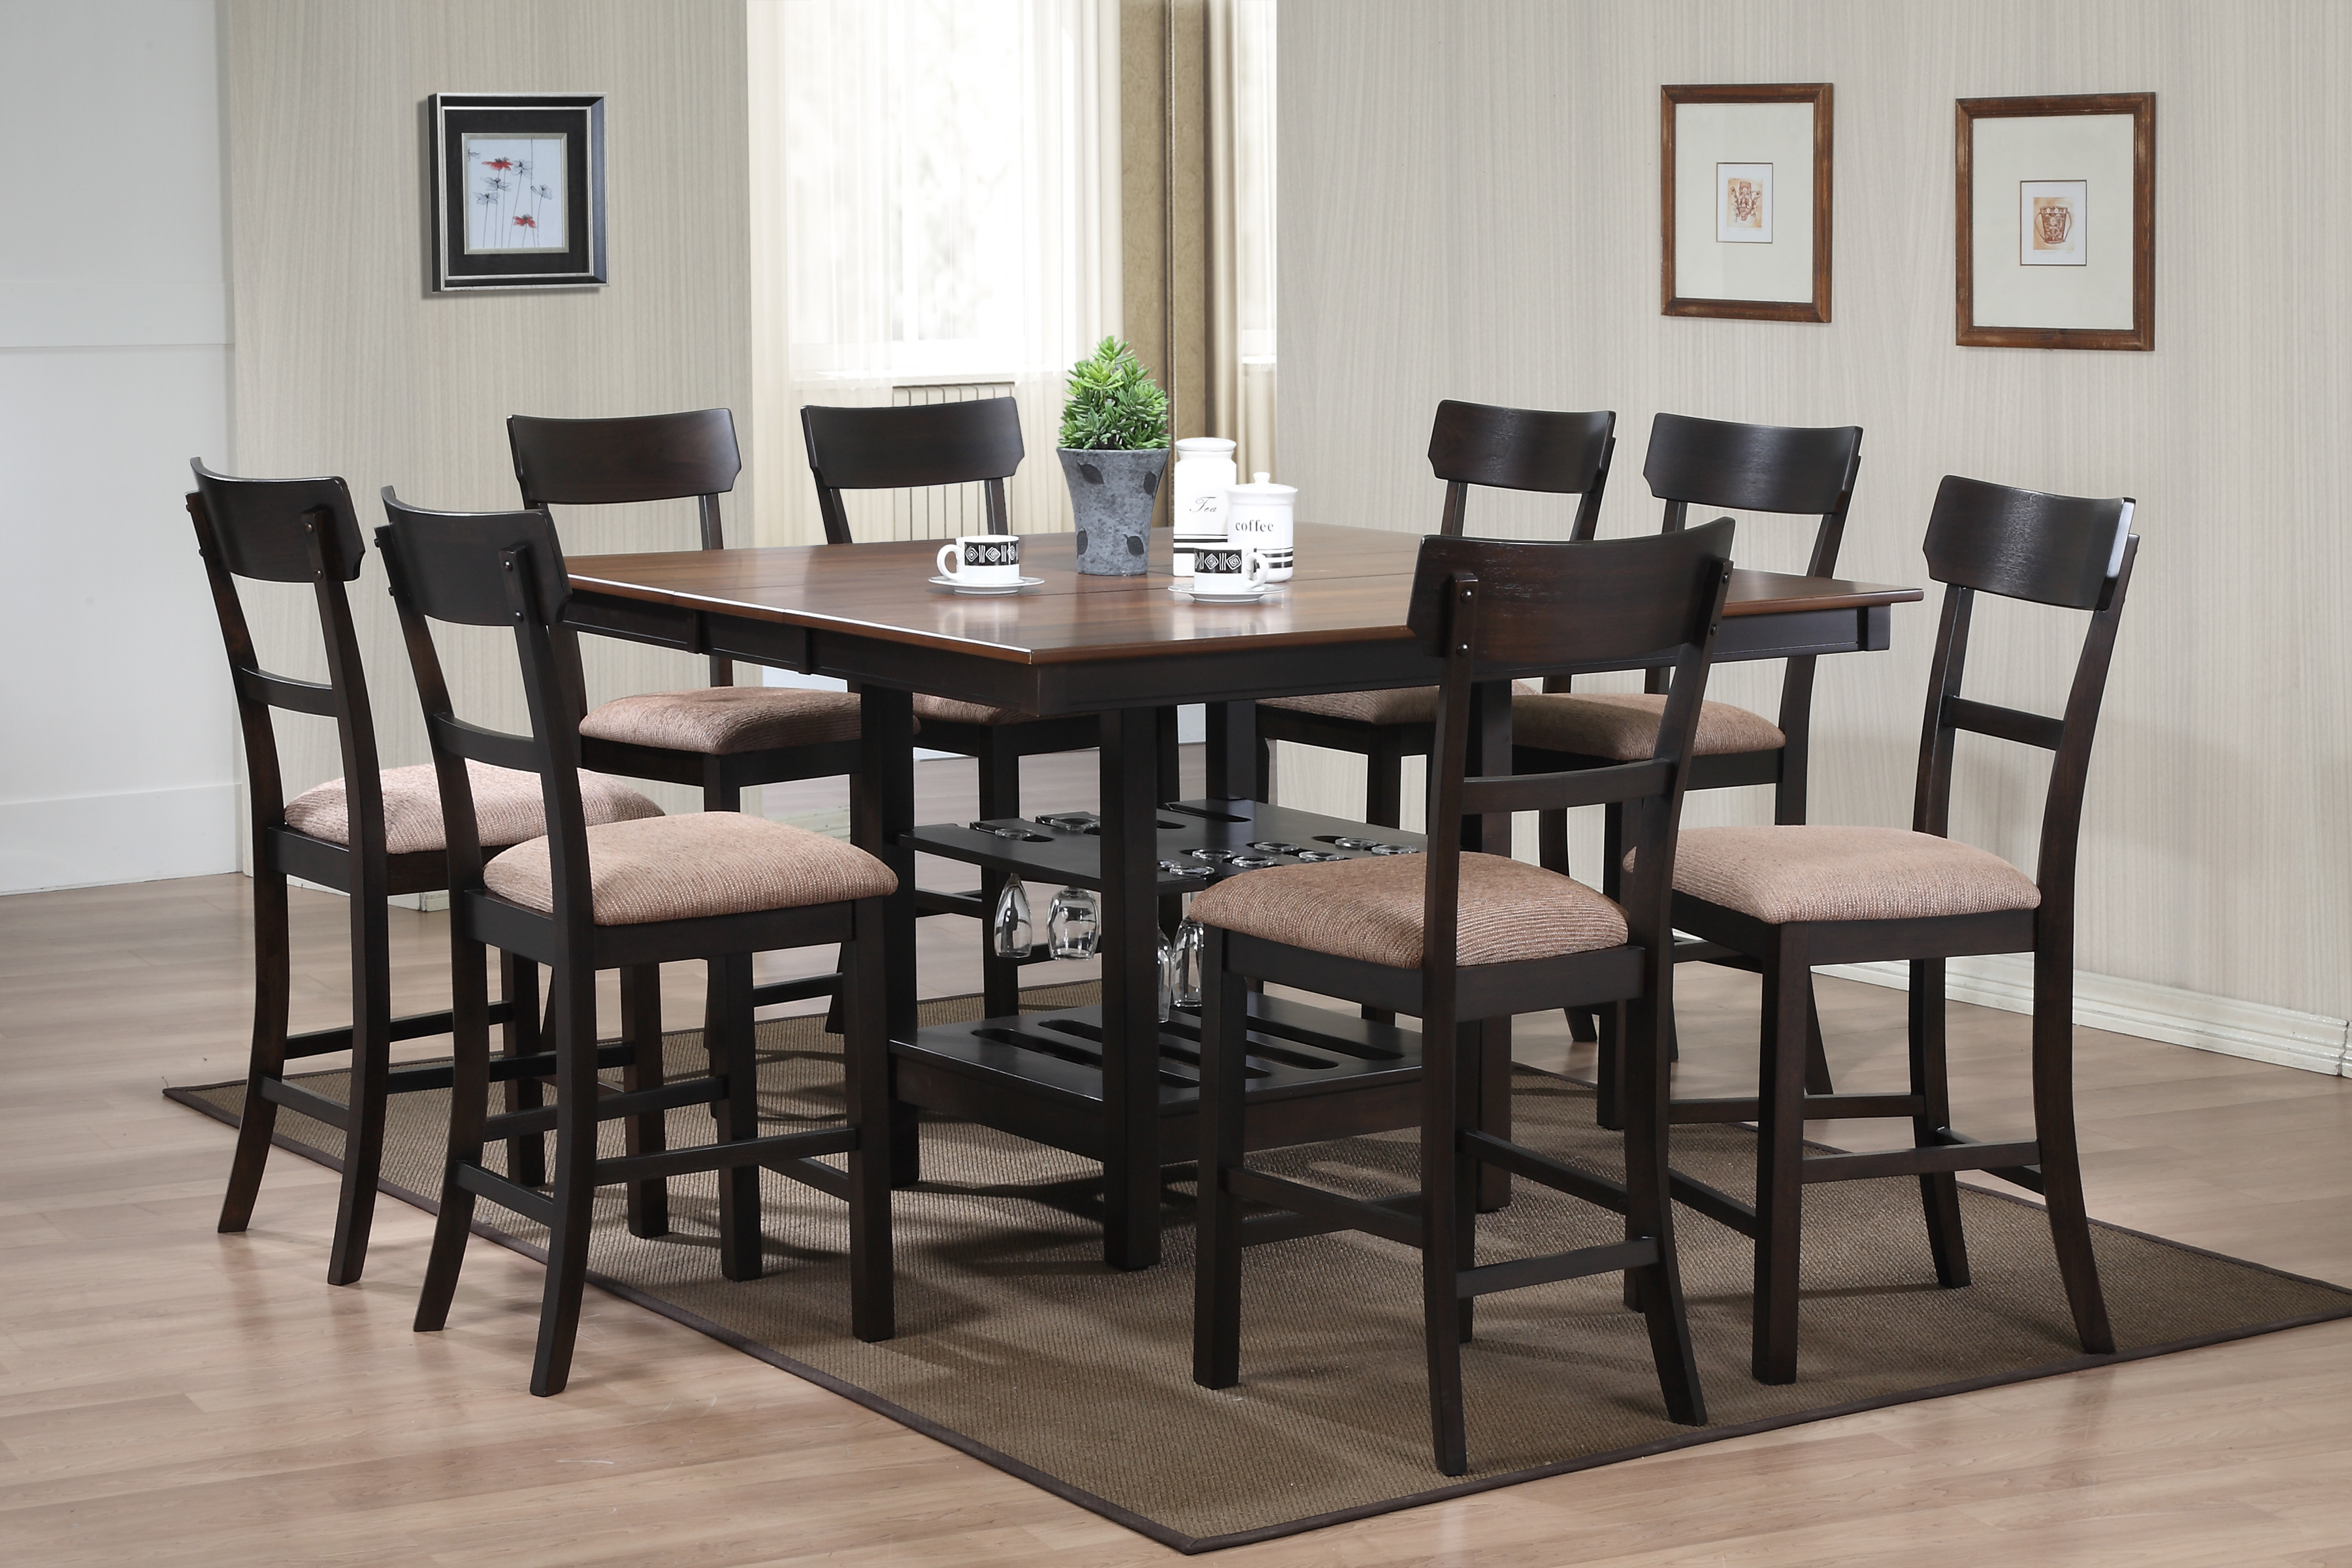 D1255 Keeton Counter Table Set (All Black)